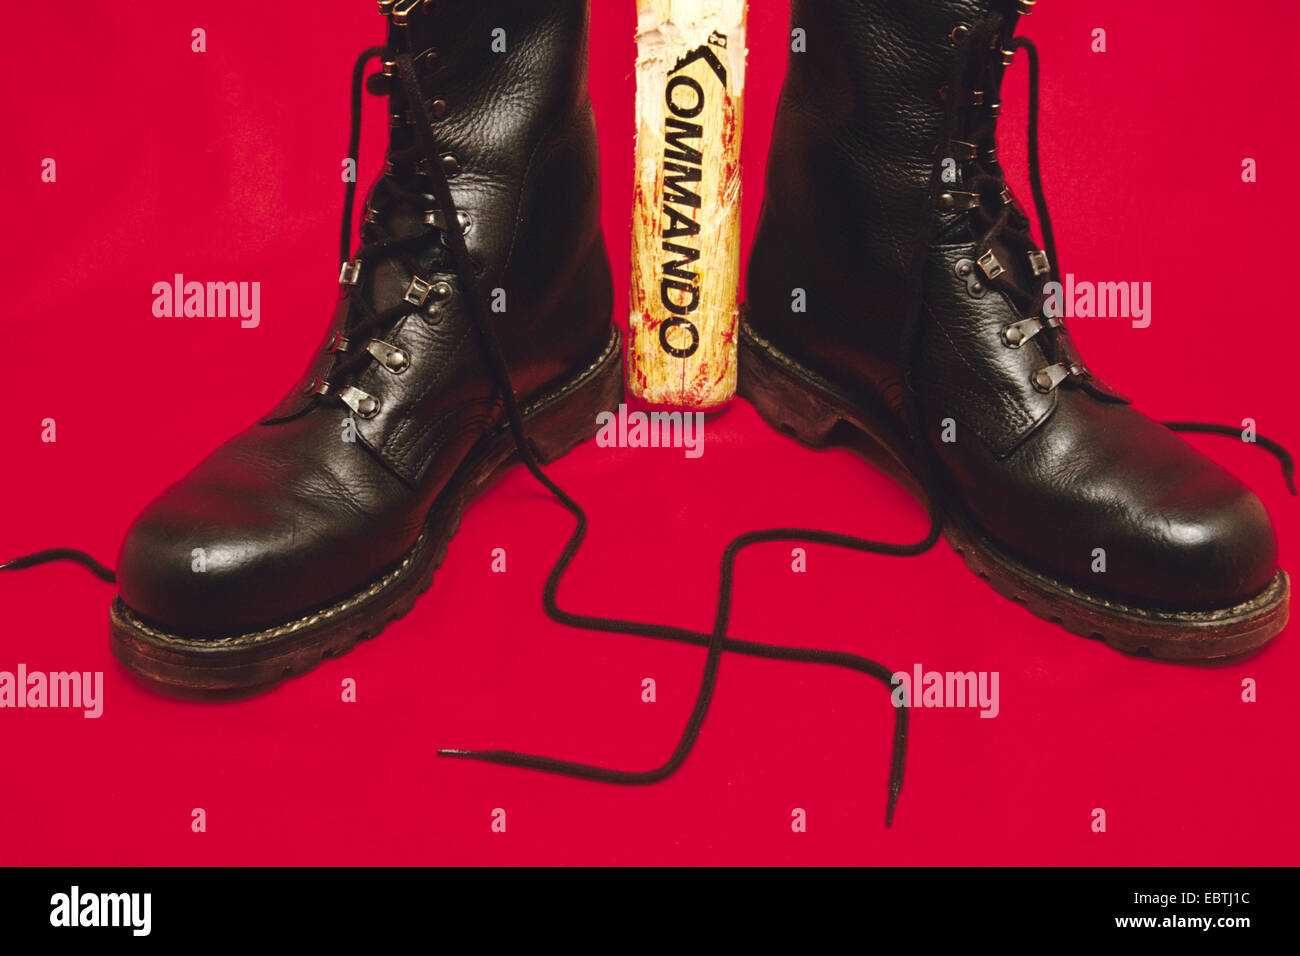 symbol picture 'neo-Nazi': baseball bat and combat boots with the shoelaces forming a swastika, Germany Stock Photo